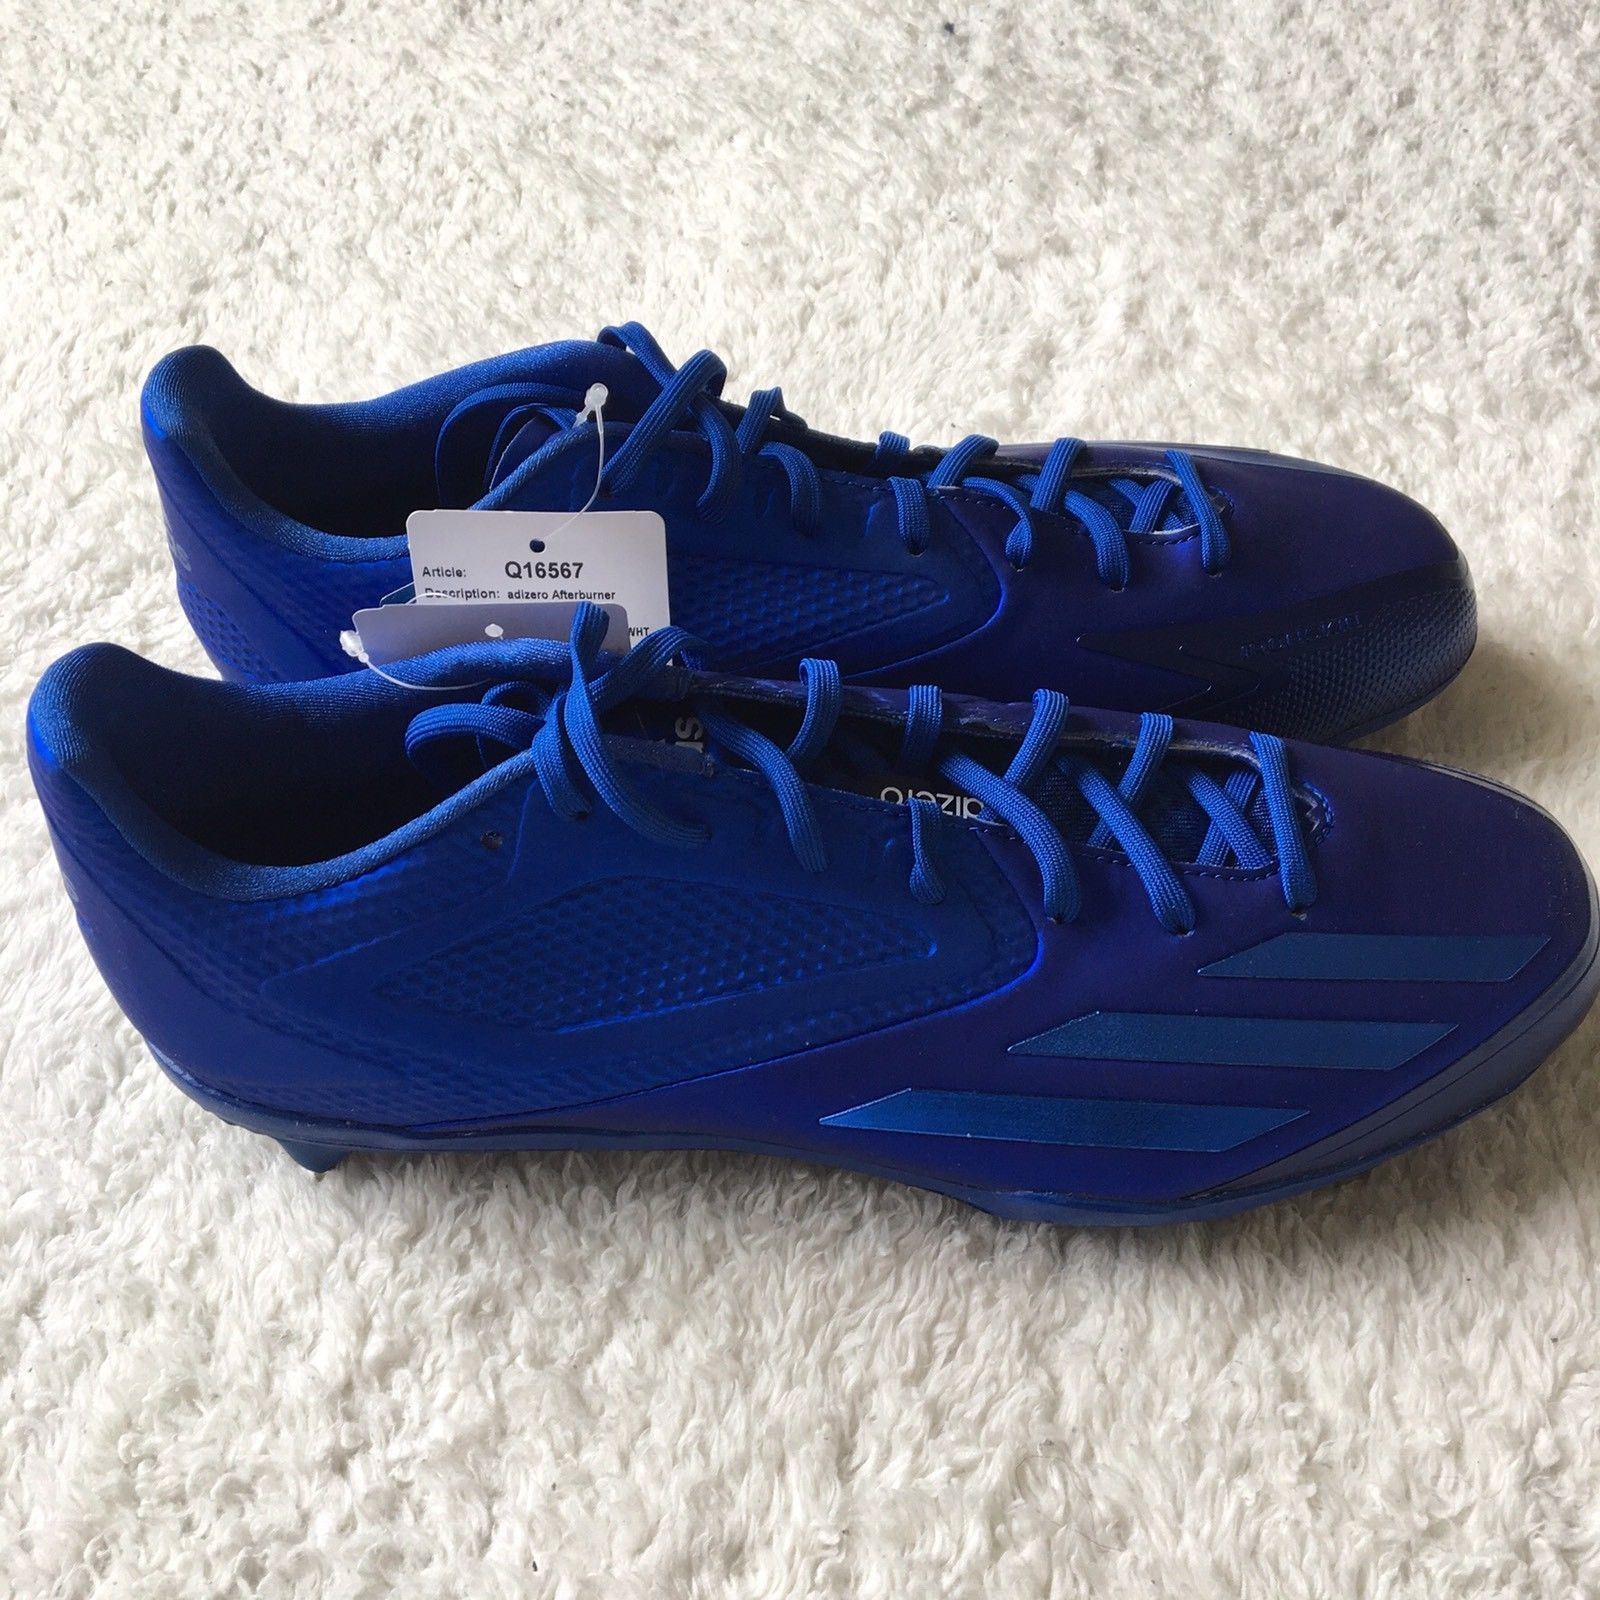 reputable site ece96 f3461 Mens Adidas Adizero AfterBurner 3 Baseball and 49 similar items. S l1600